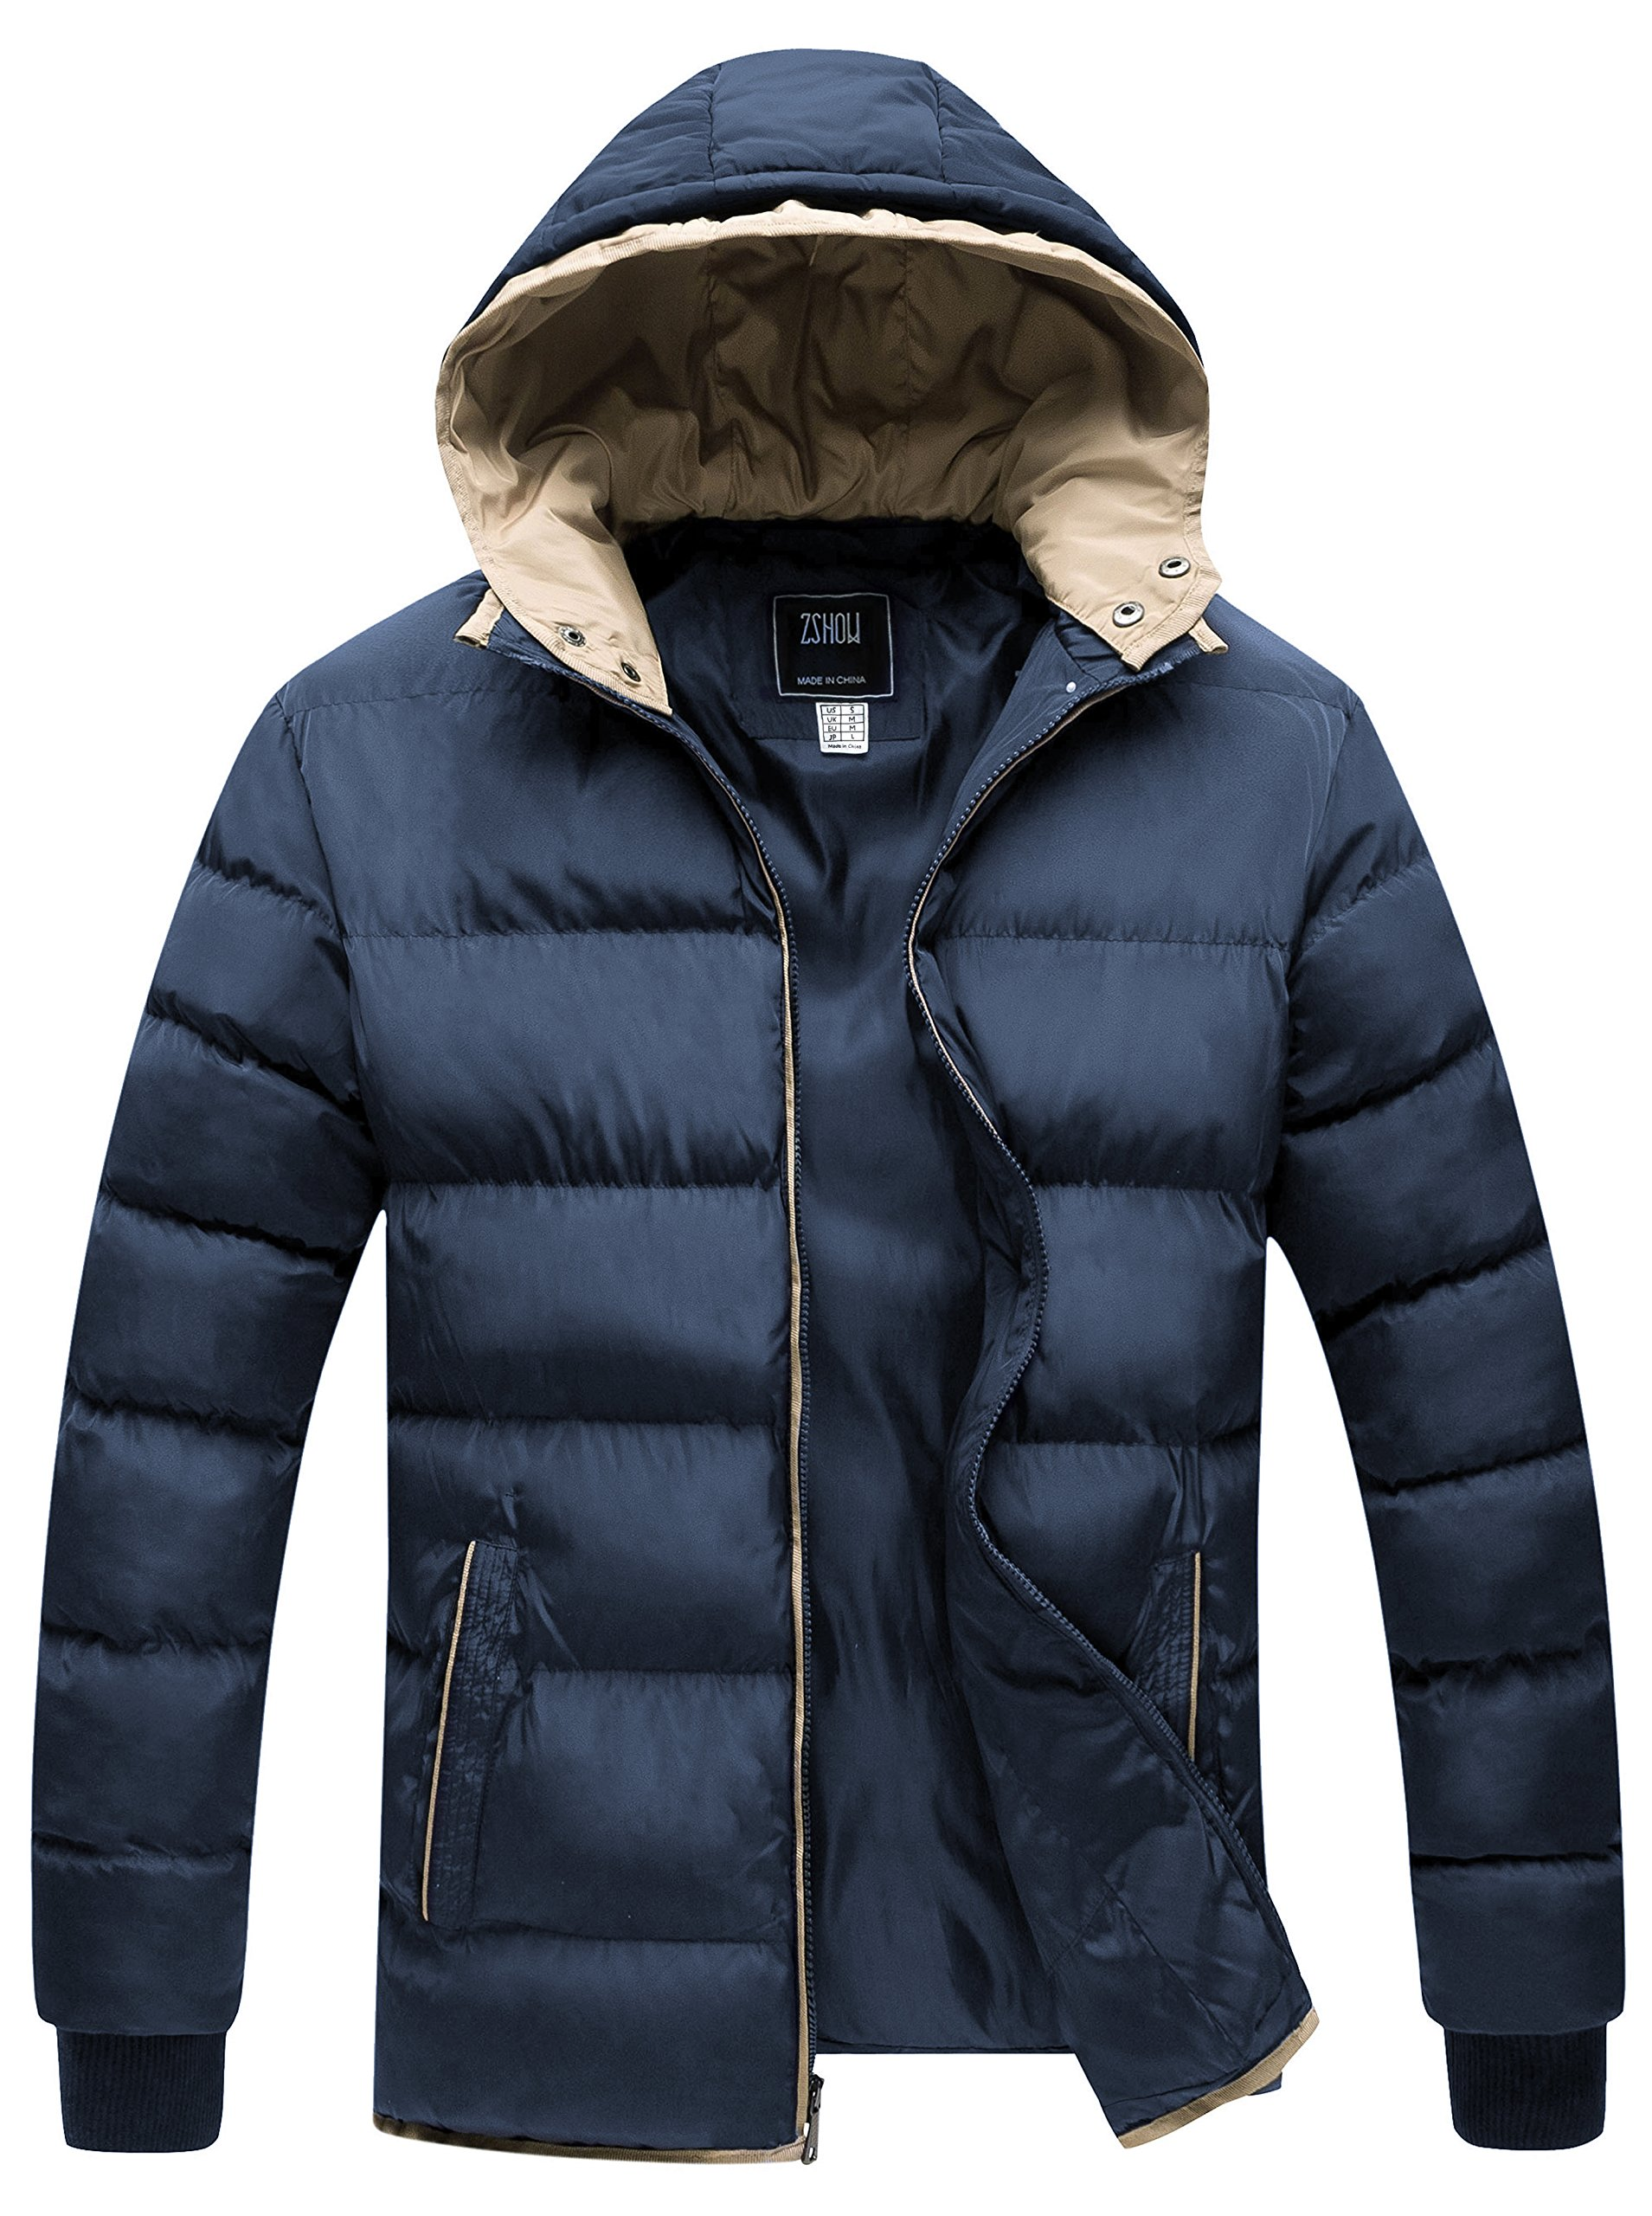 ZSHOW Men's Winter Double Hooded Thicken Quilted Cotton Jacket(Navy,Medium)